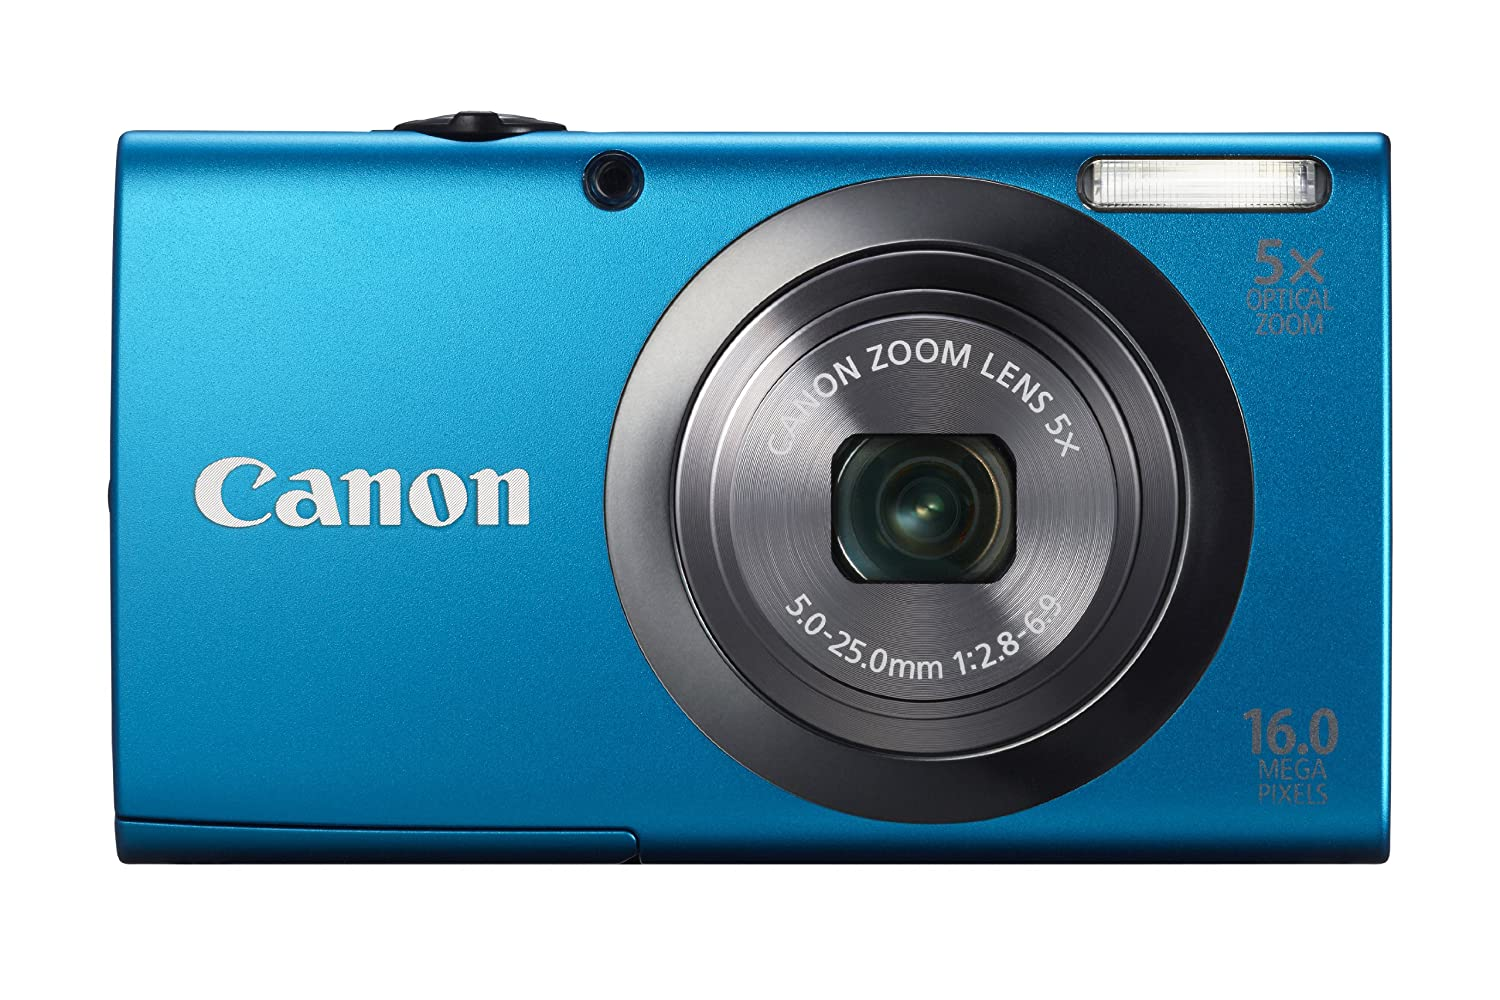 91bLLr bhoL. SL1500  Canon PowerShot A2300 16.0 MP Digital Camera with 5x Optical Zoom (Silver)